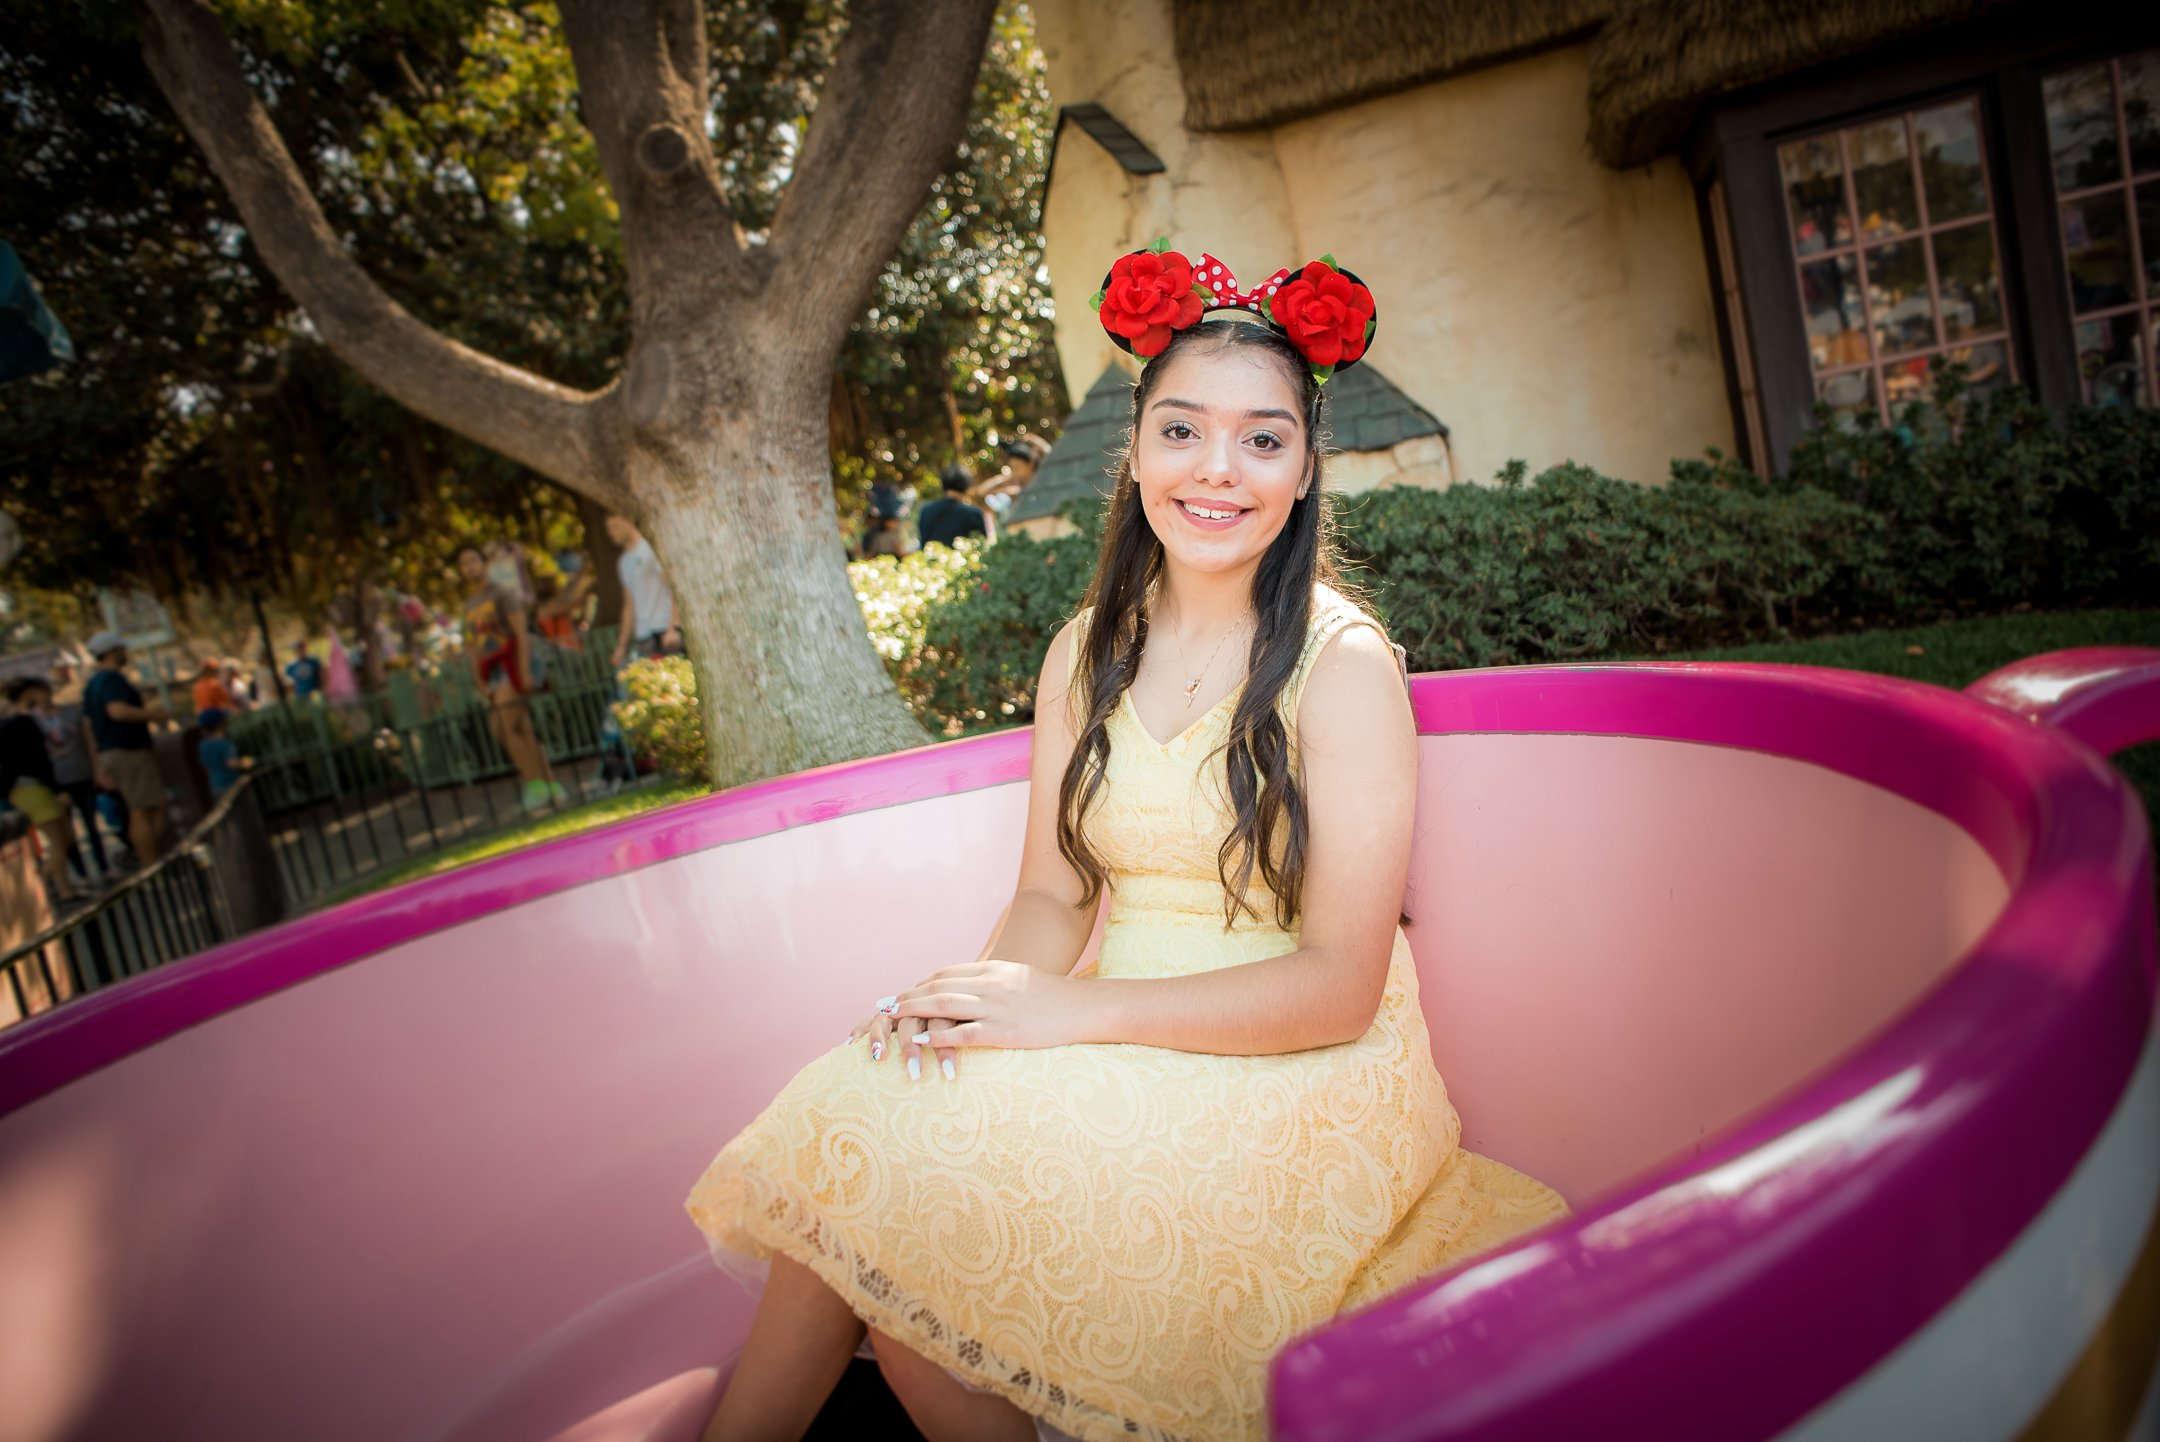 Disneyland Quinceanera photo session - In the stationary teacup by the Mad Tea Party in Disneyland, CA